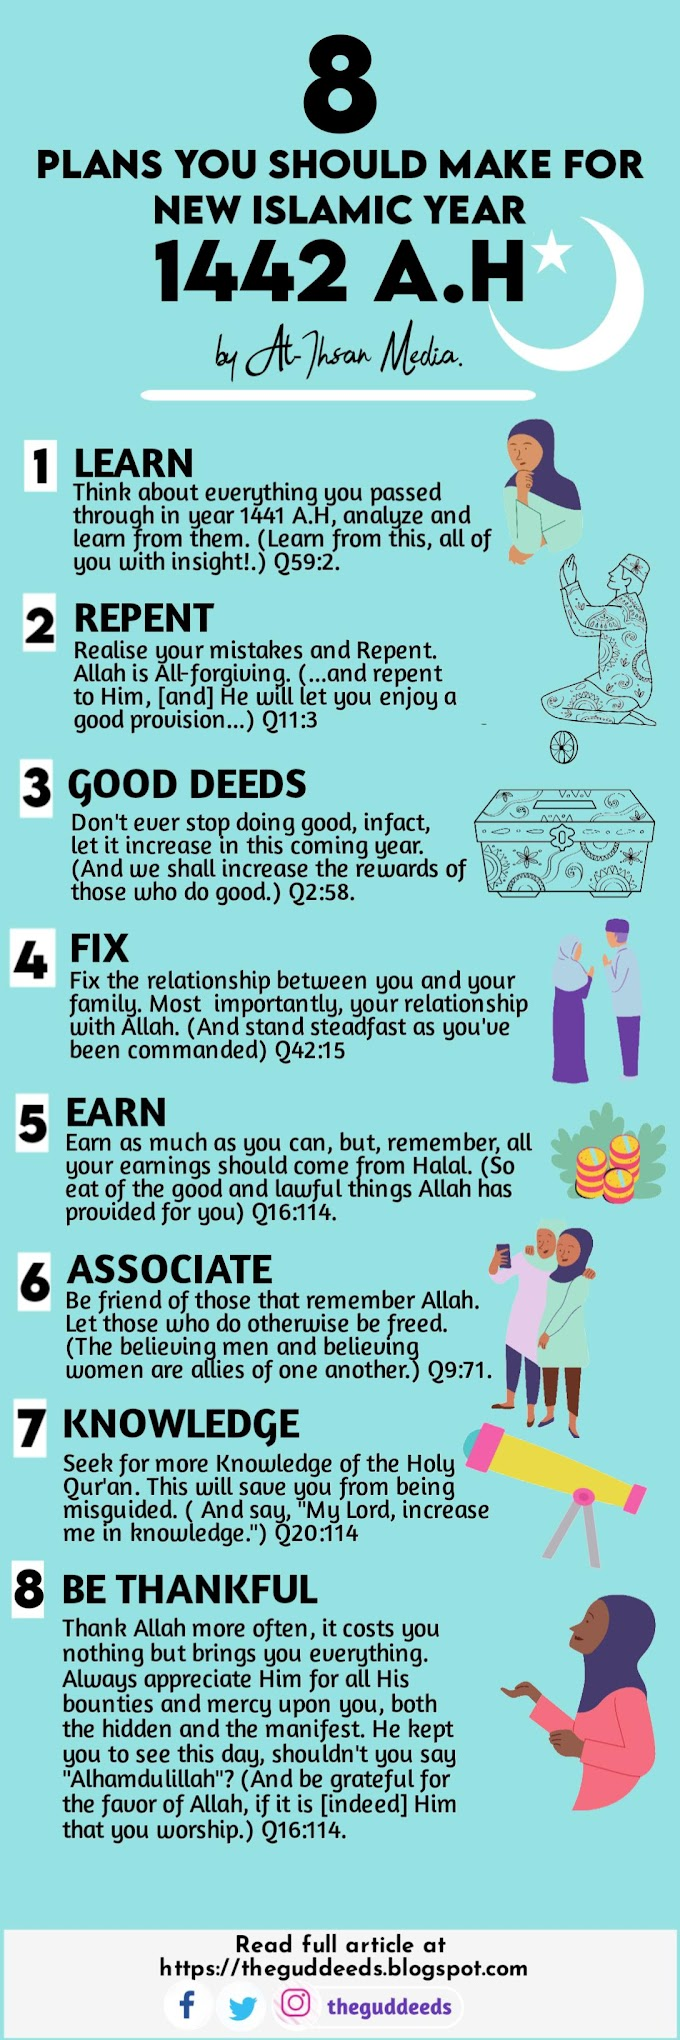 8 Plans You Should Make For New Islamic Year 1442 A.H | Theguddeeds